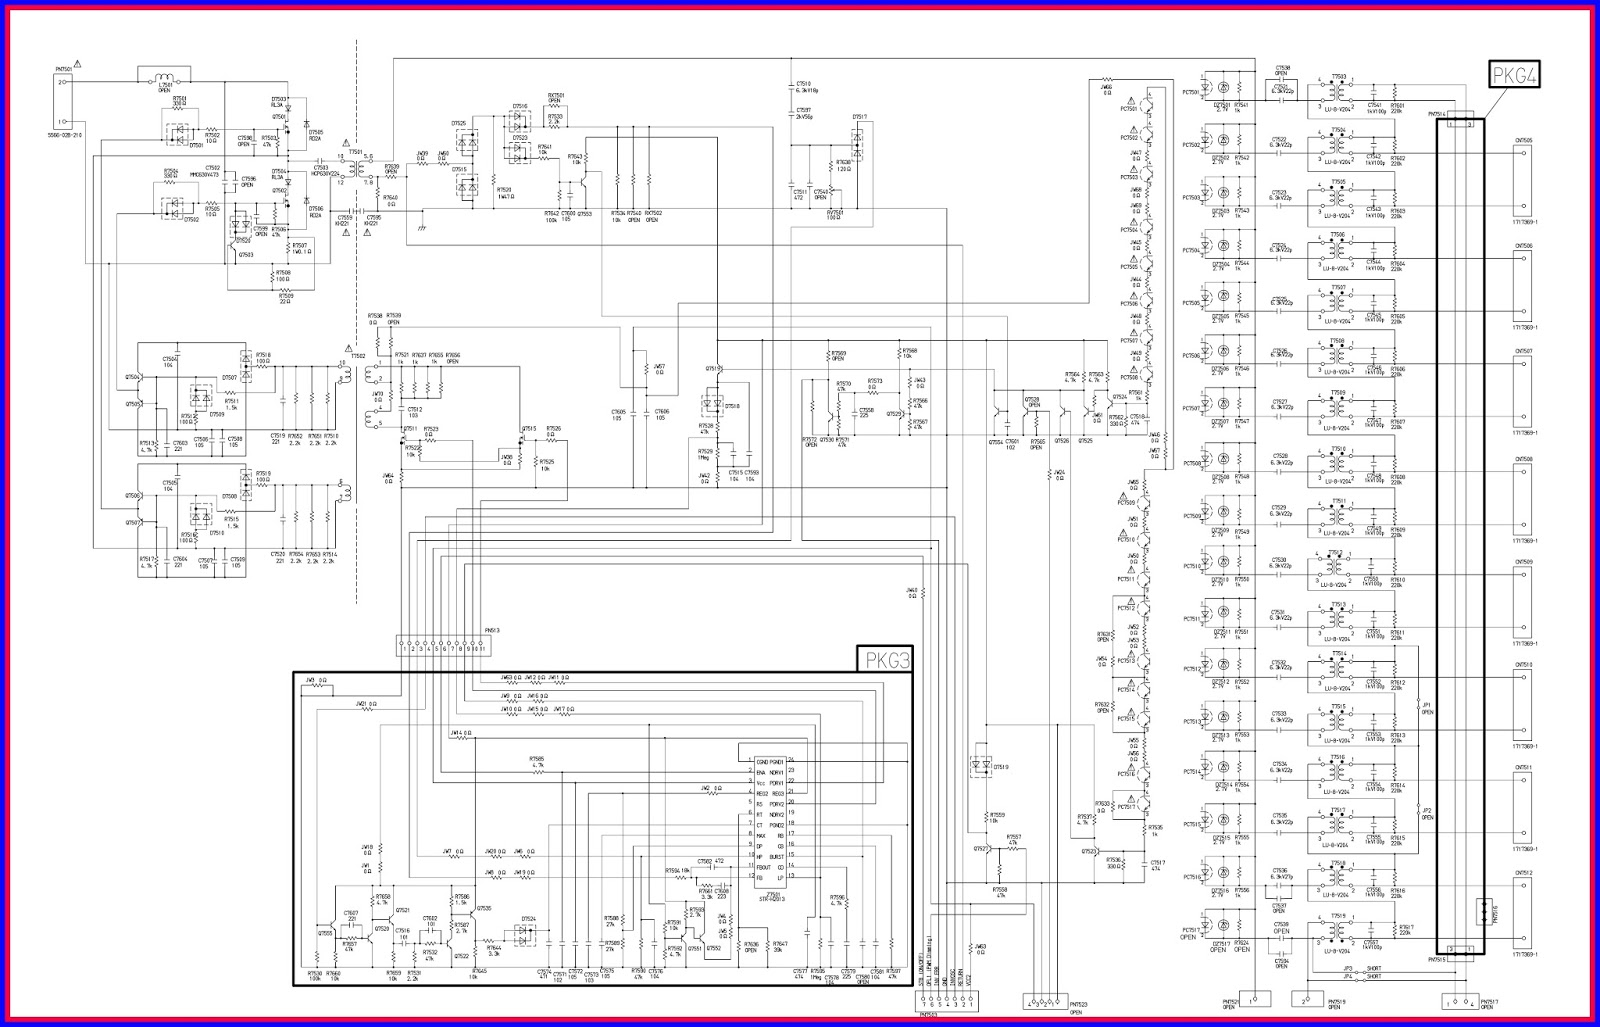 wiring diagram ac sharp inverter free download wiring diagram rh xwiaw us AC Electrical Wiring Diagrams AC Electrical Wiring Diagrams